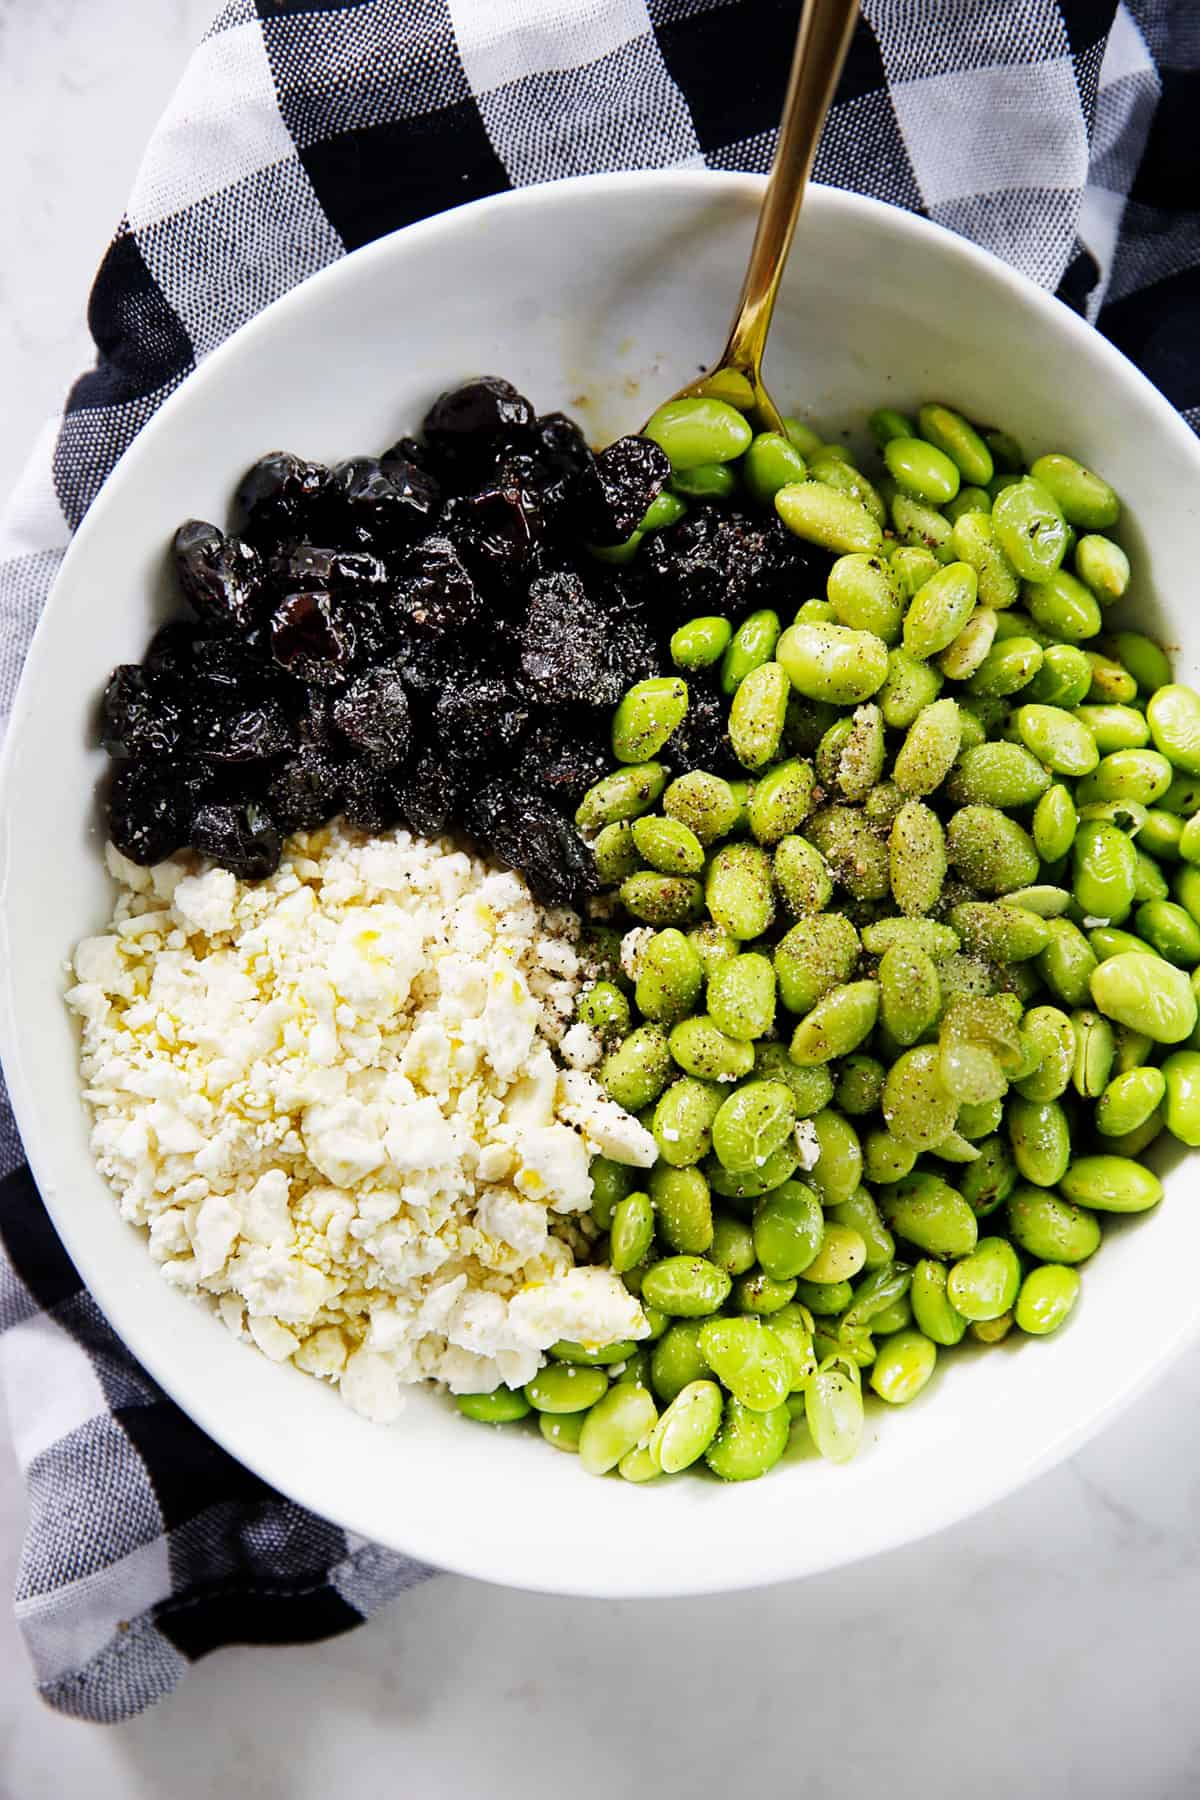 Ingredients for easy edamame salad with cherries and feta.